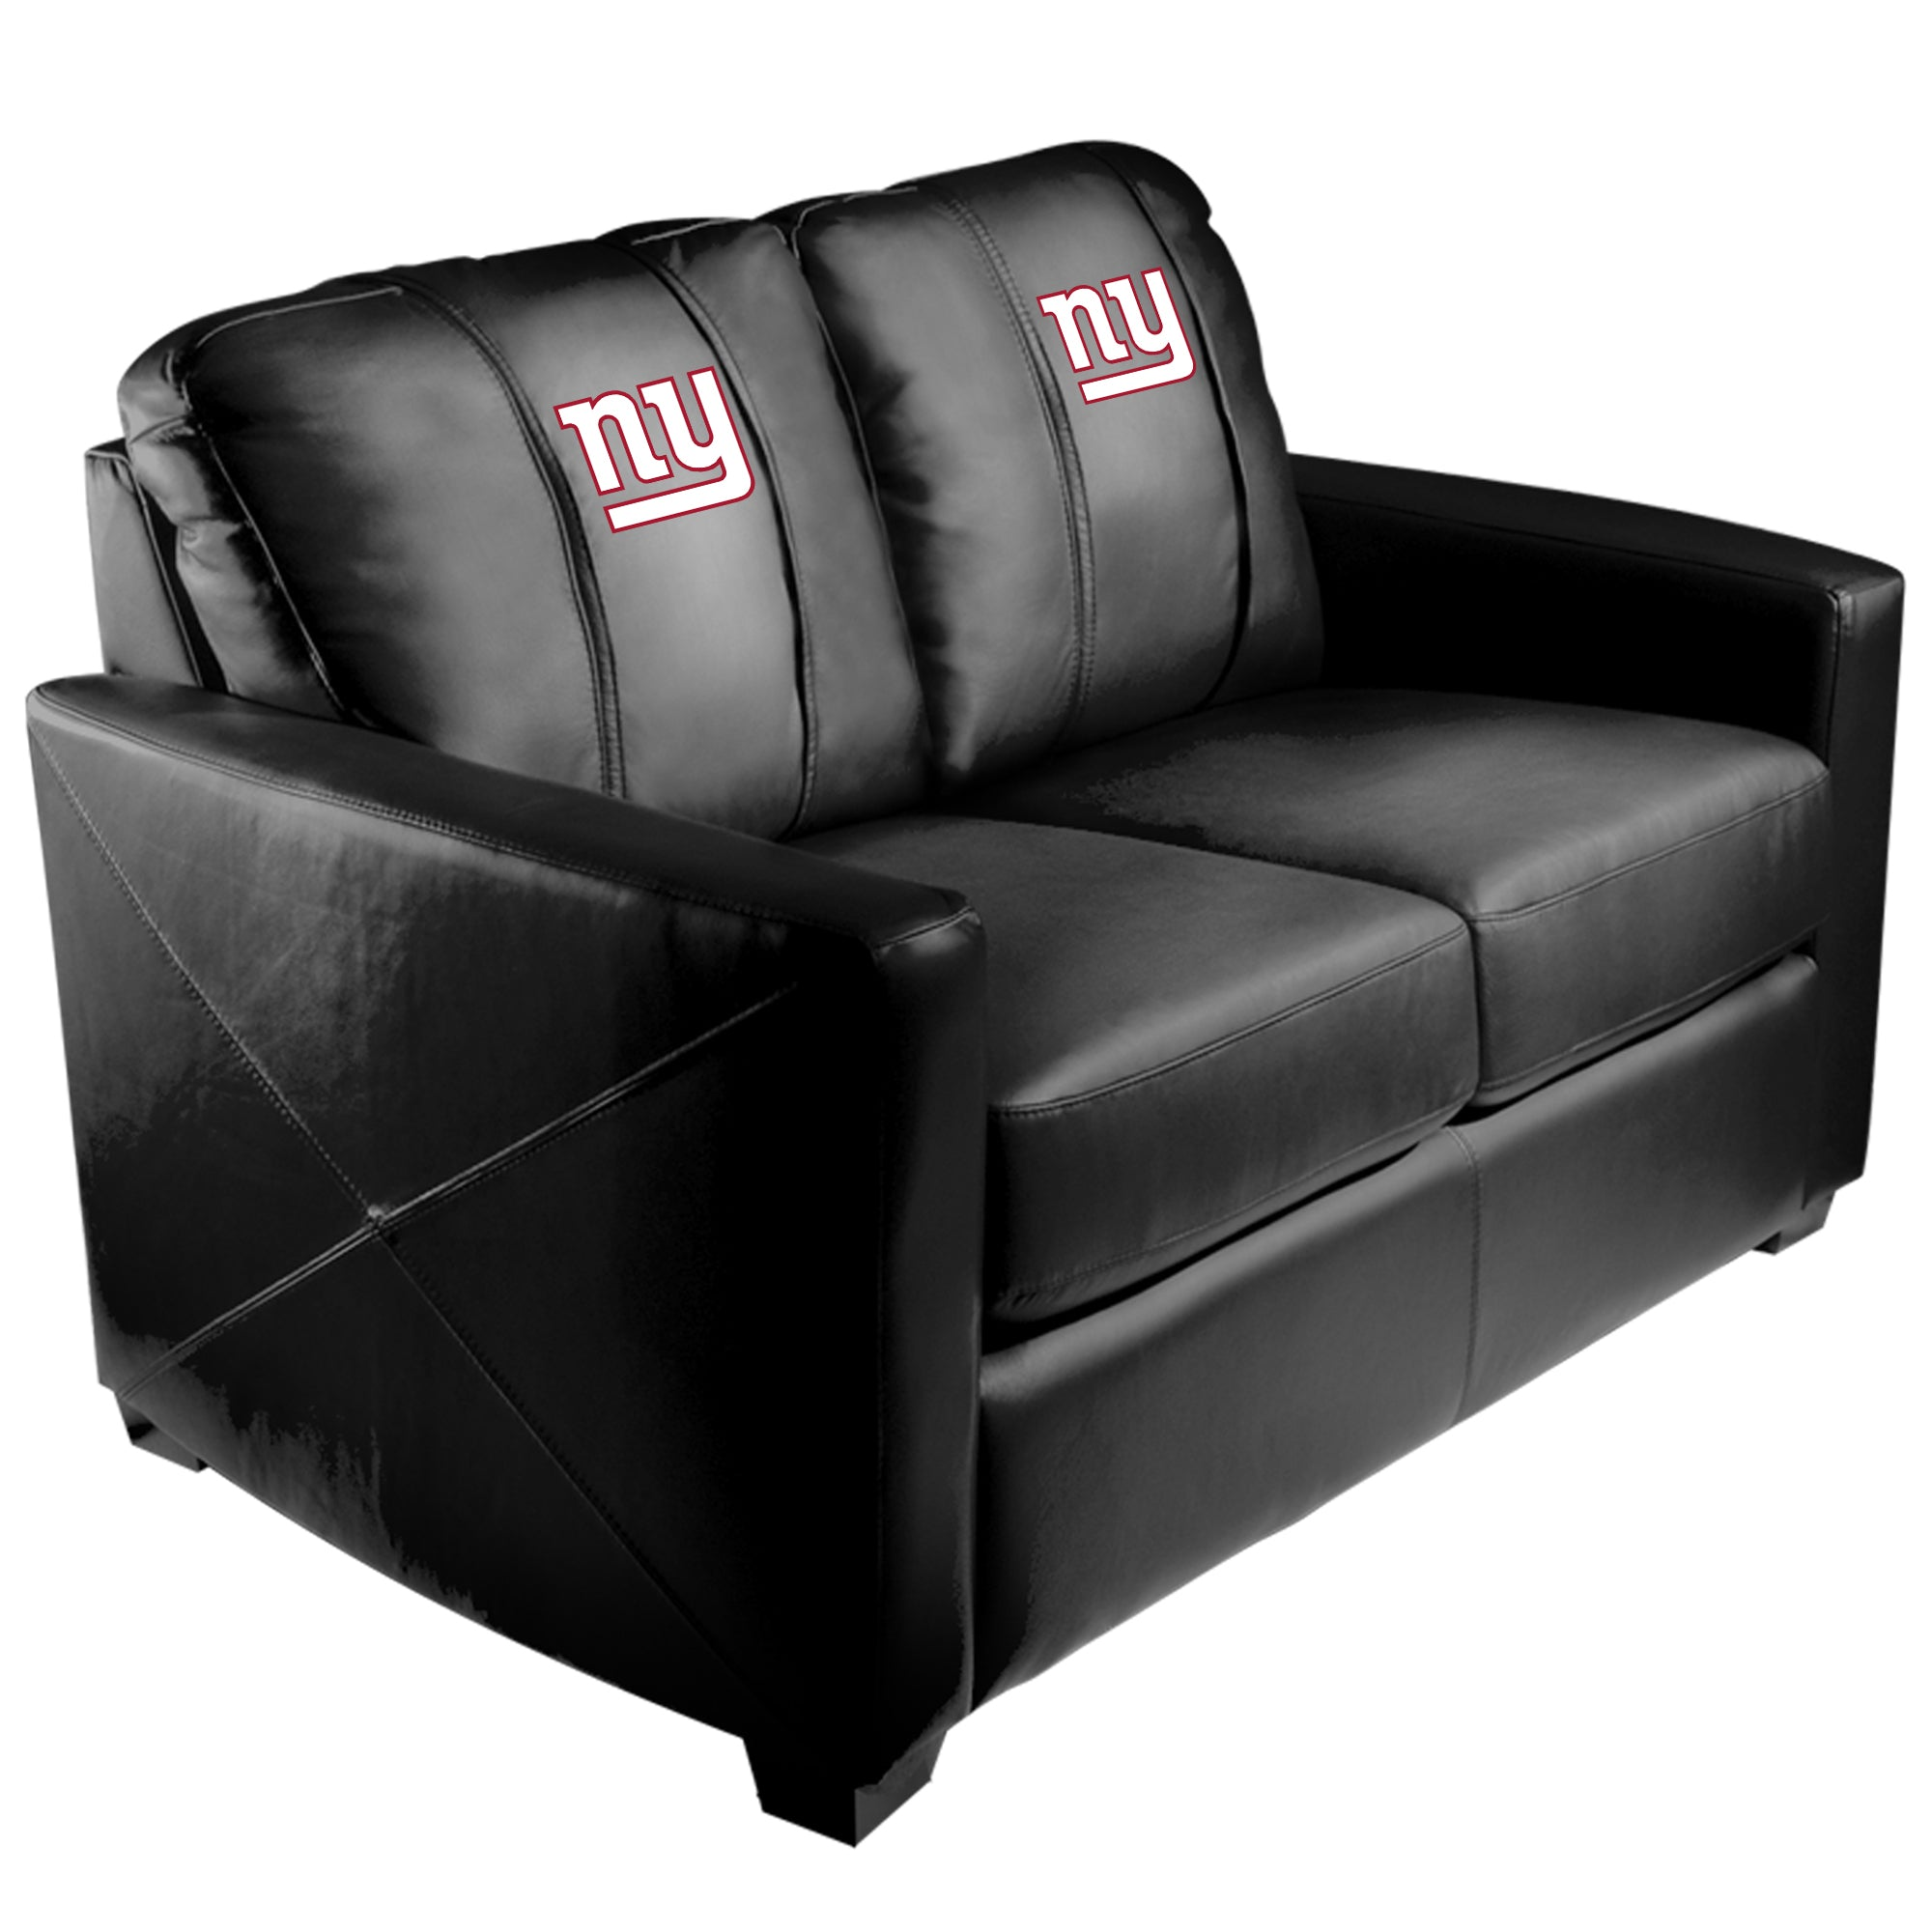 Silver Loveseat with  New York Giants Primary Logo